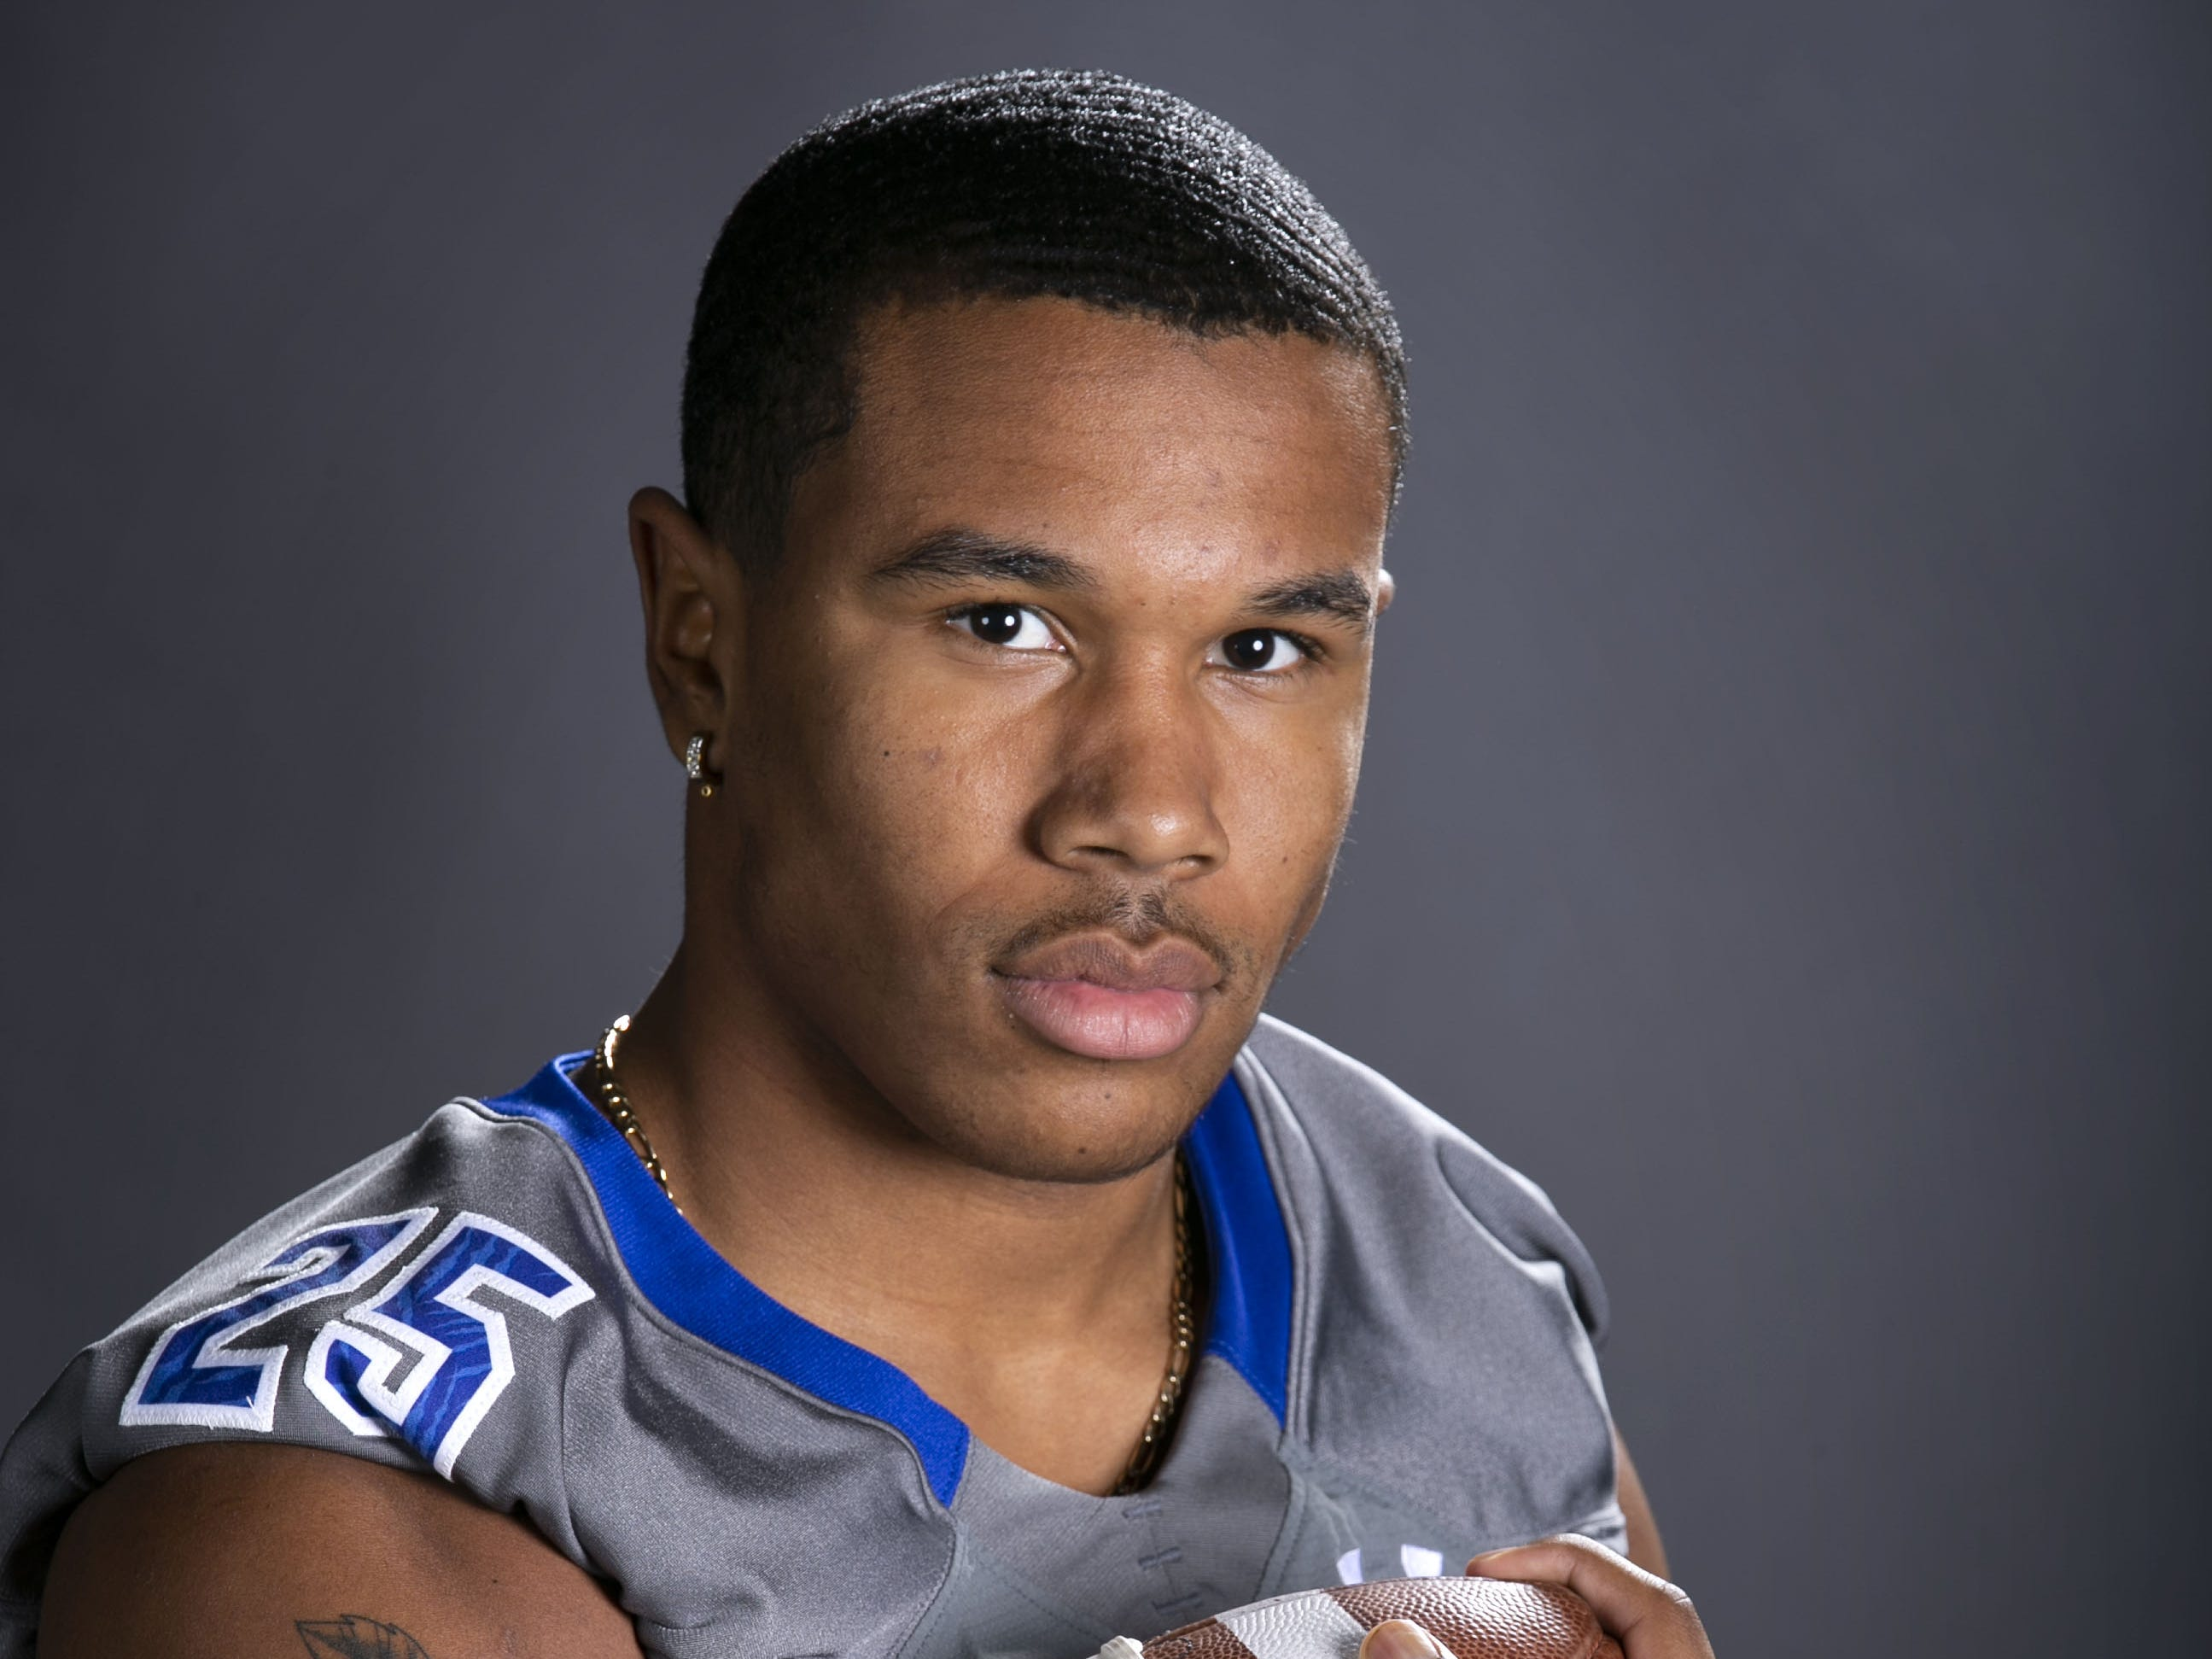 DeCarlos Brooks, a running back with Chandler High School is a finalist for the azcentral Sports Awards high school football Player of the Year.